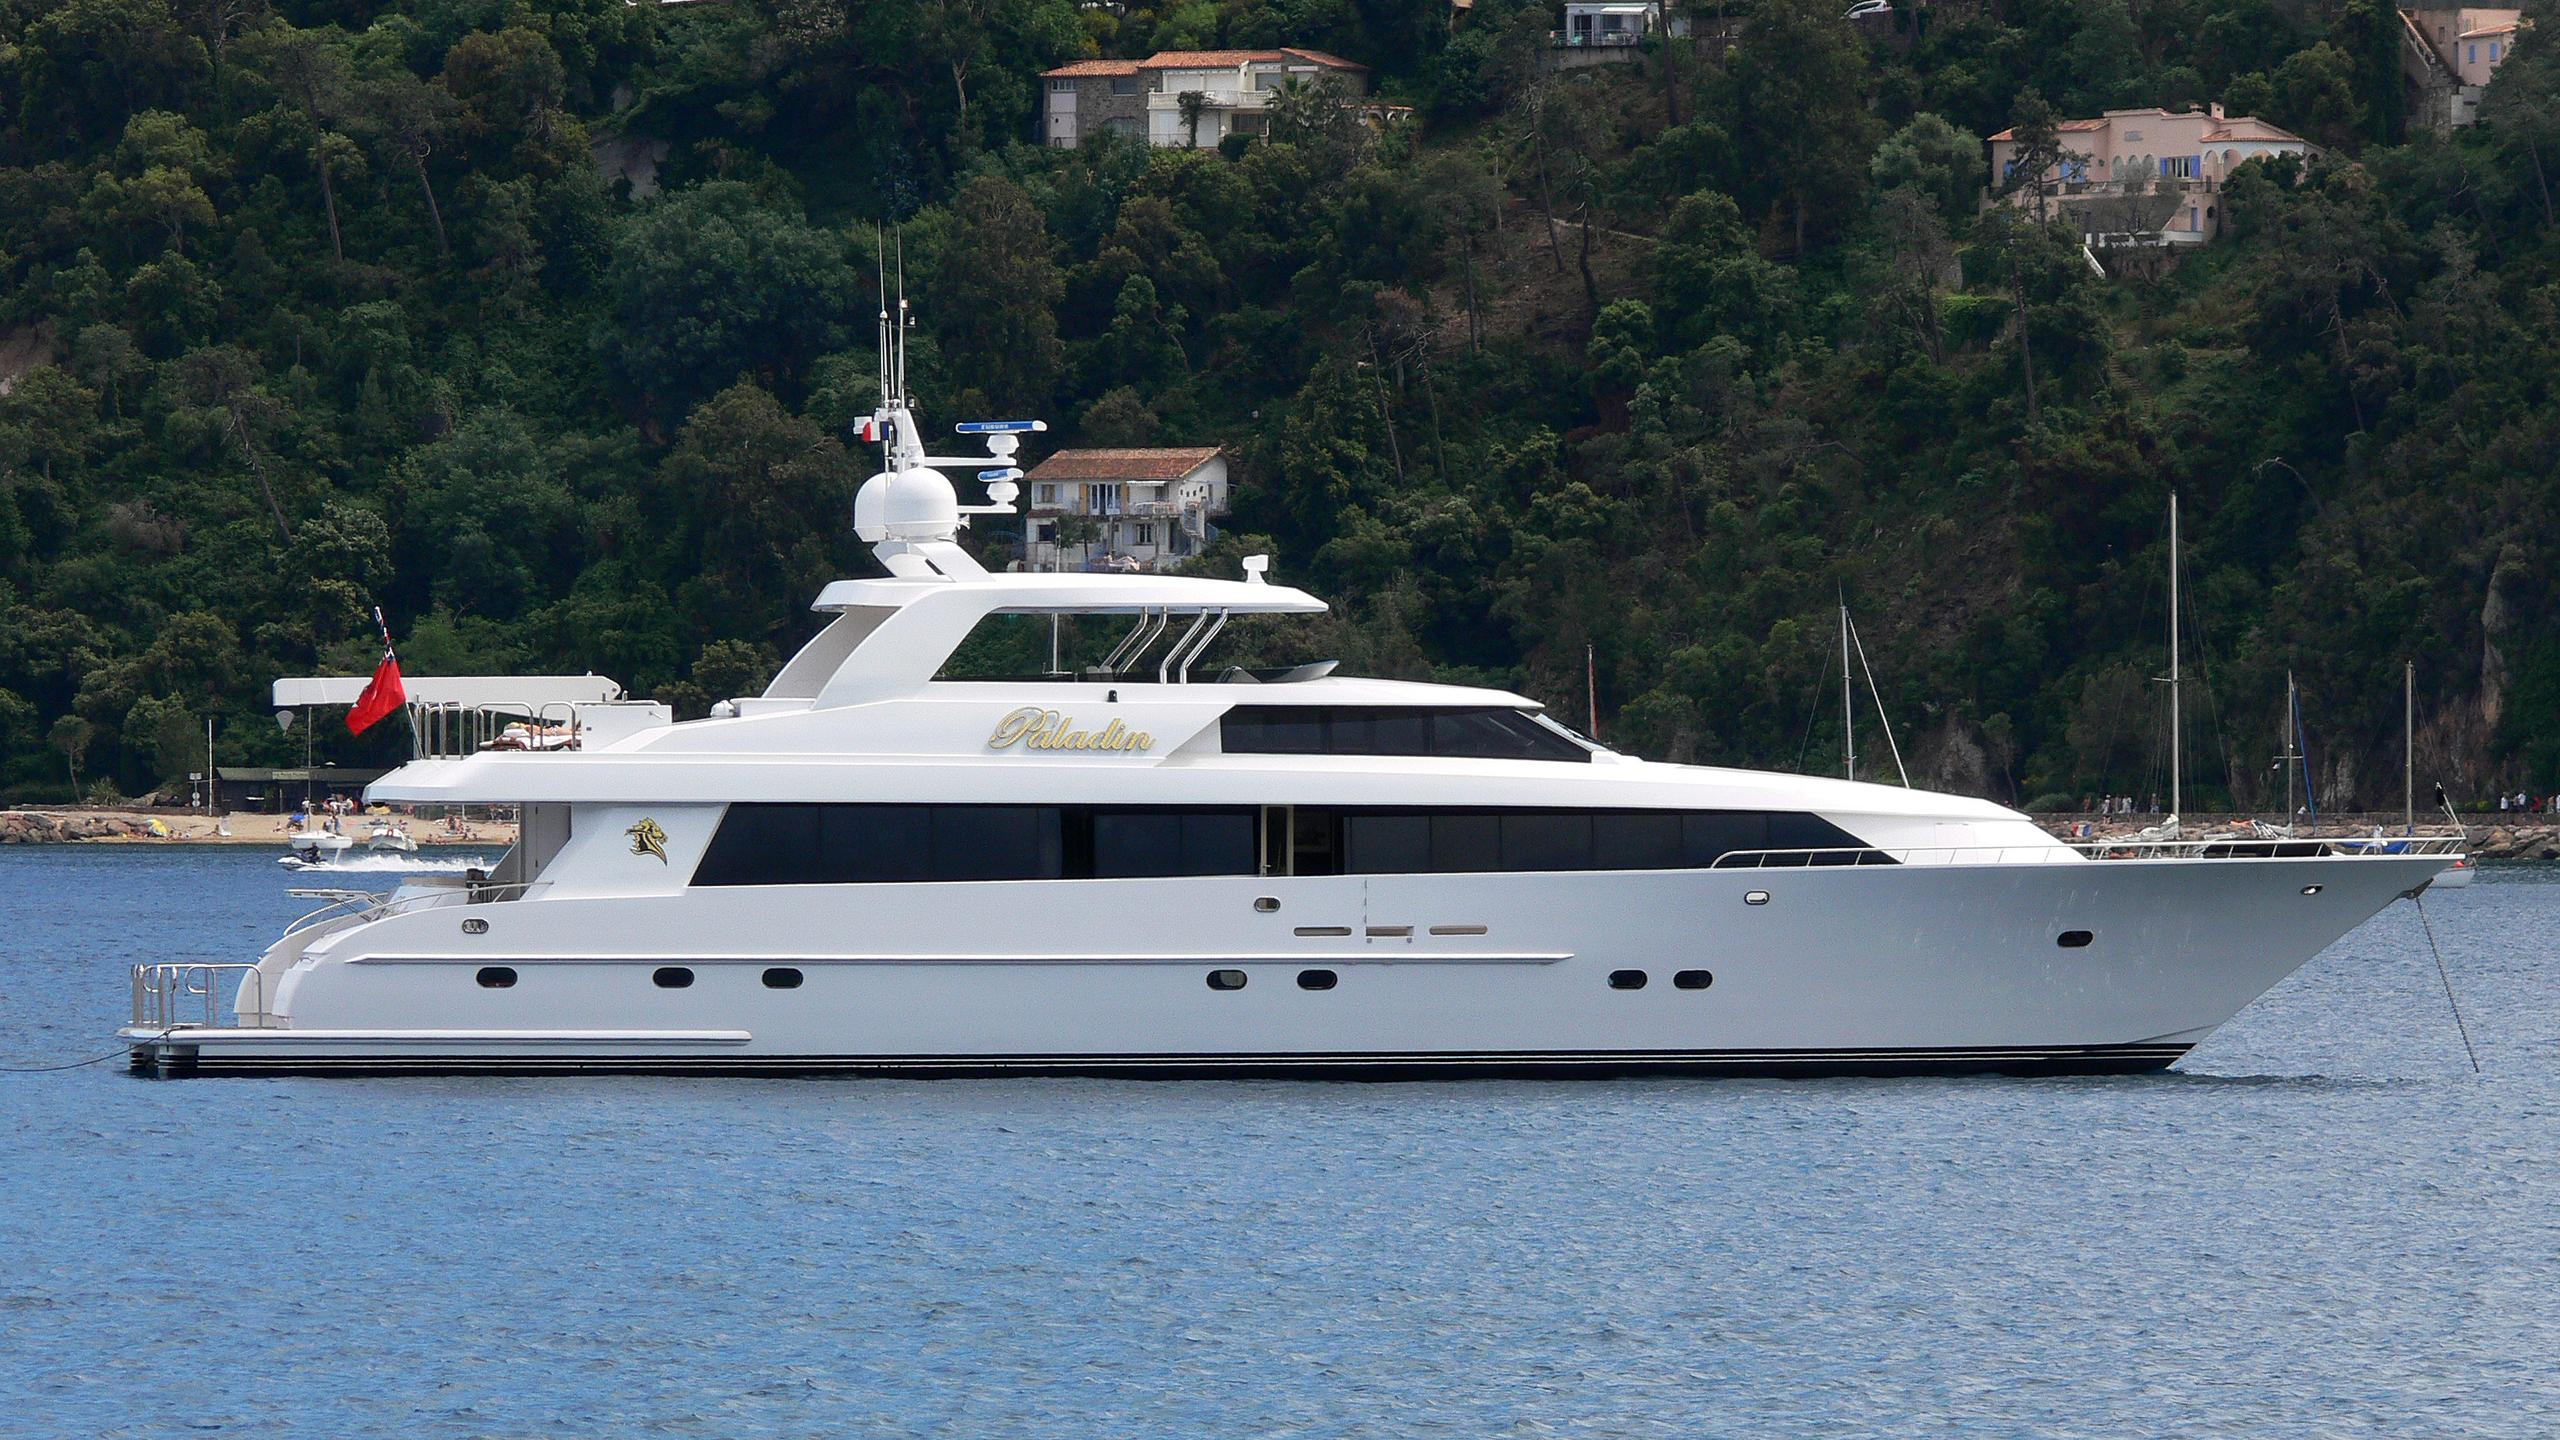 legendary scott free motoryacht northcoast yachts 37m 2000 profile